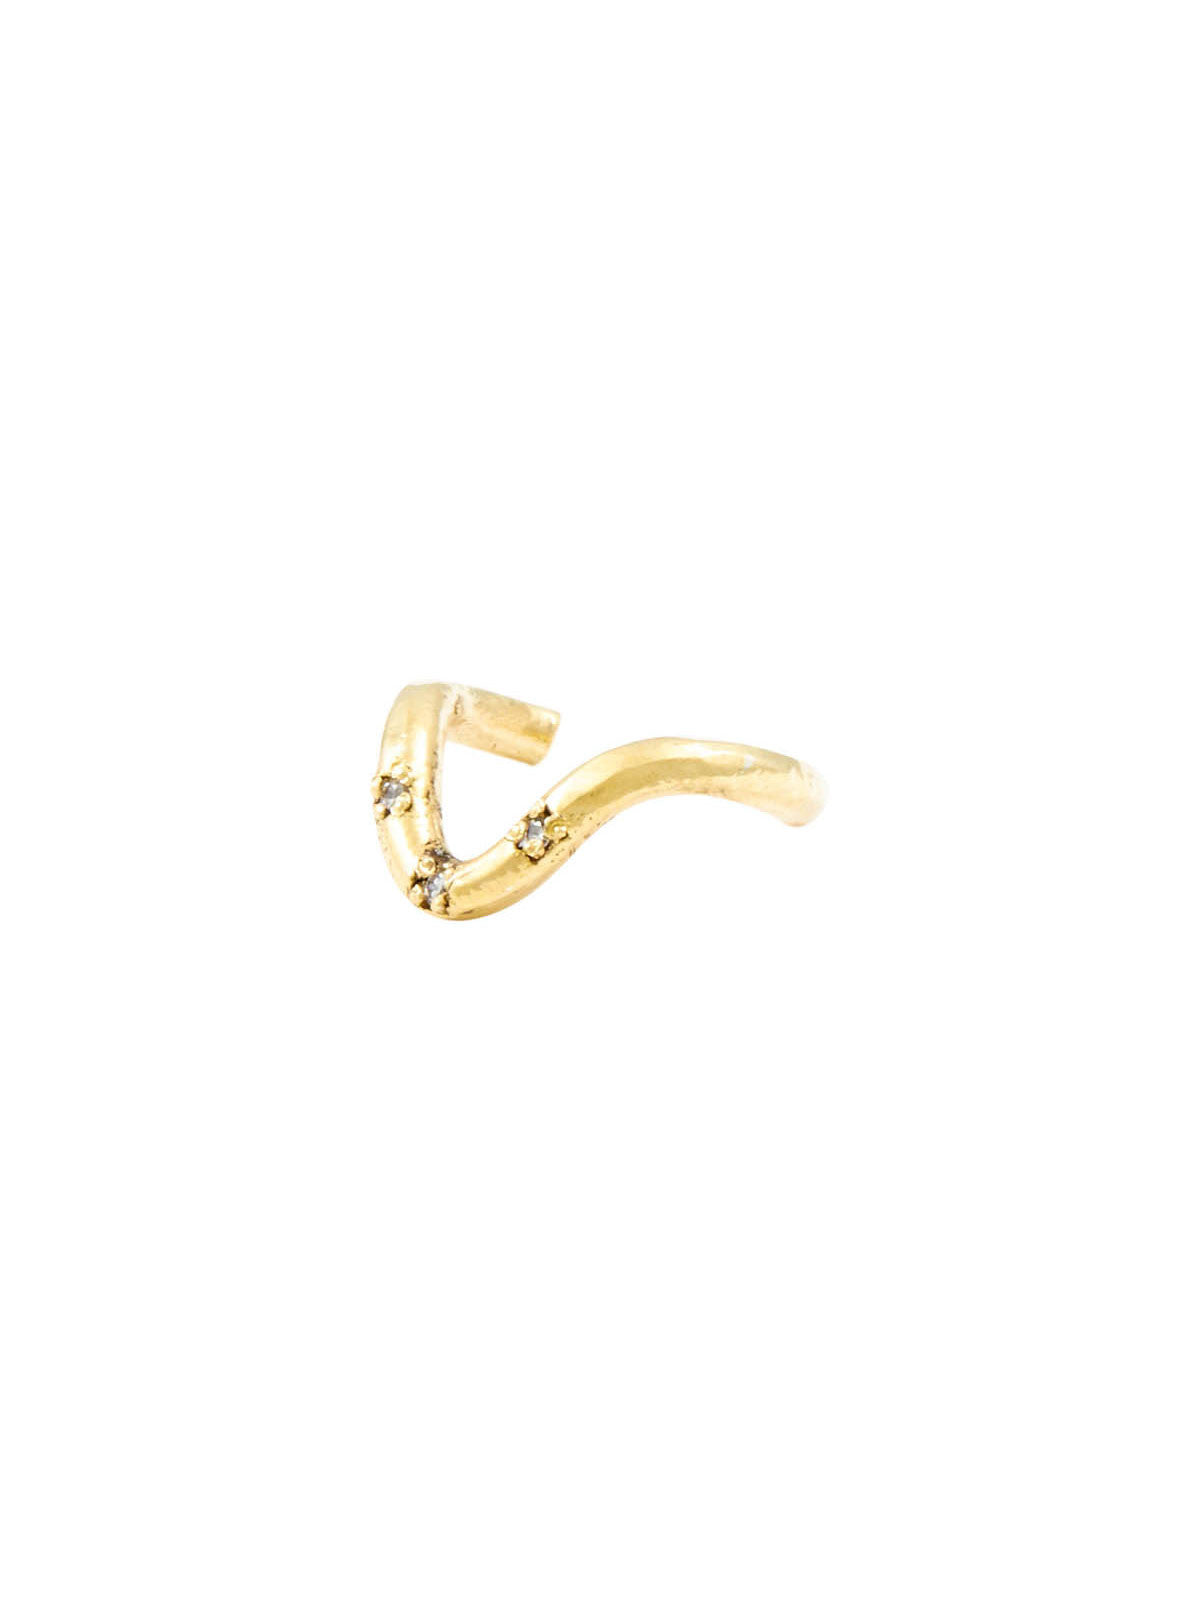 The Darling 3 Stone Gold White Diamond Ear Cuff